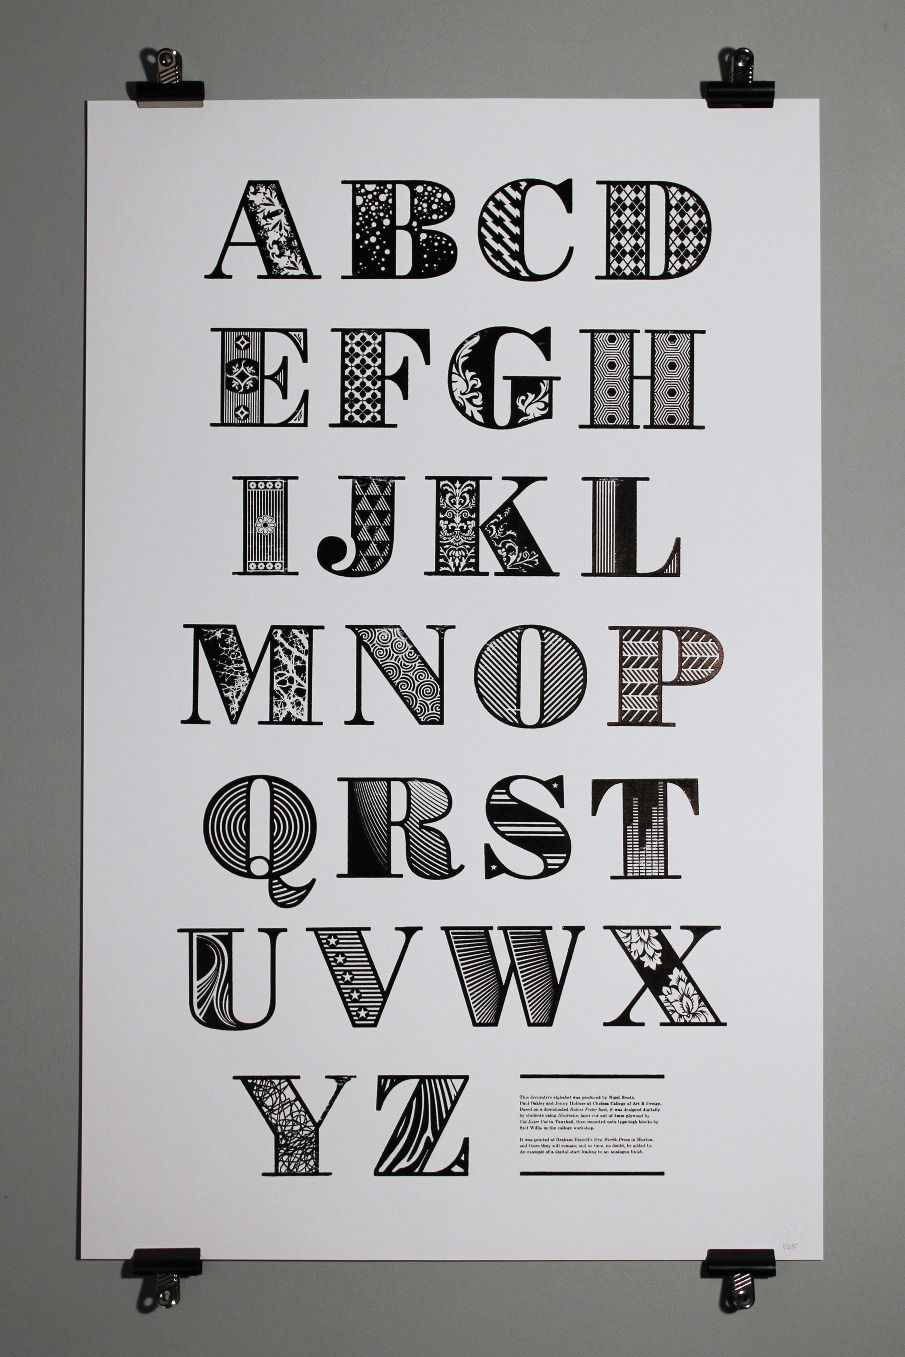 Poster design tumblr - Decorative Alphabet Version Of Bodoni Poster Produced By Nigel Bents Paul Oakley And Jonny Holmes At Chelsea College Of Art Design